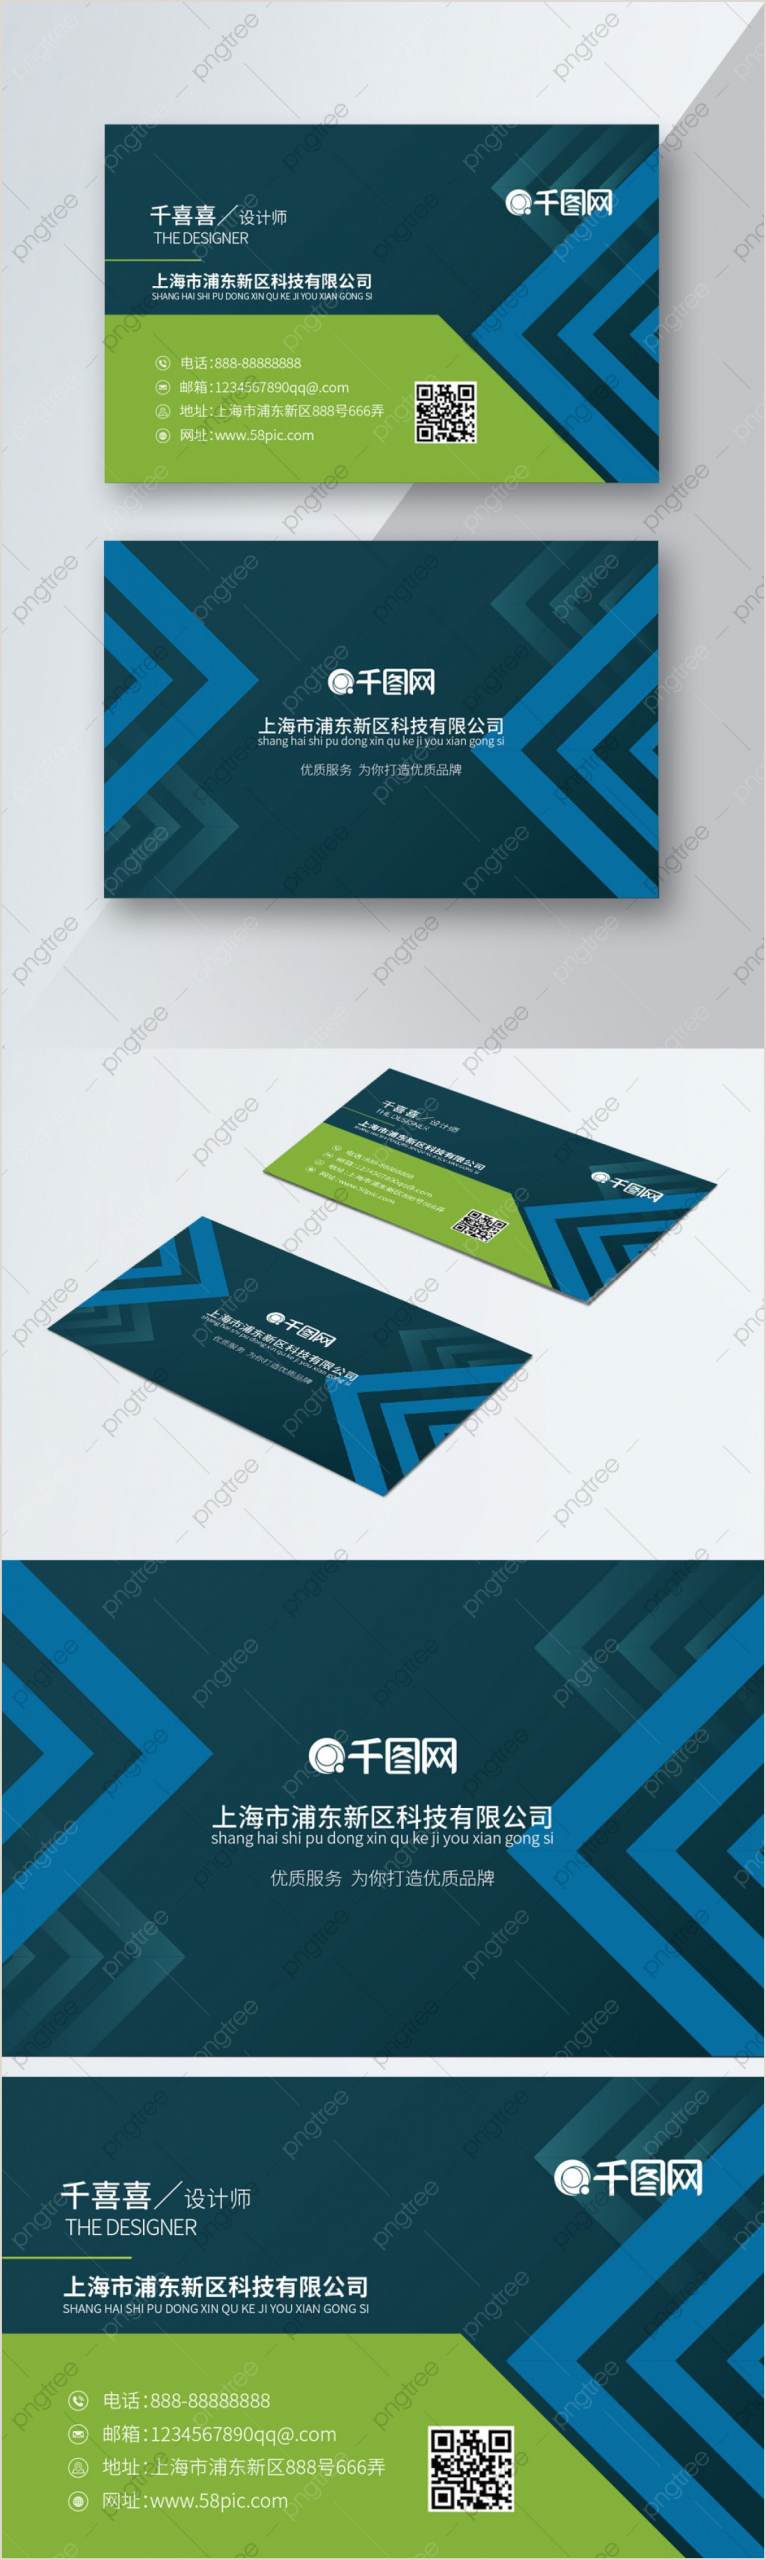 Personal Buisness Cards Personal Card Png Vector And Psd Files